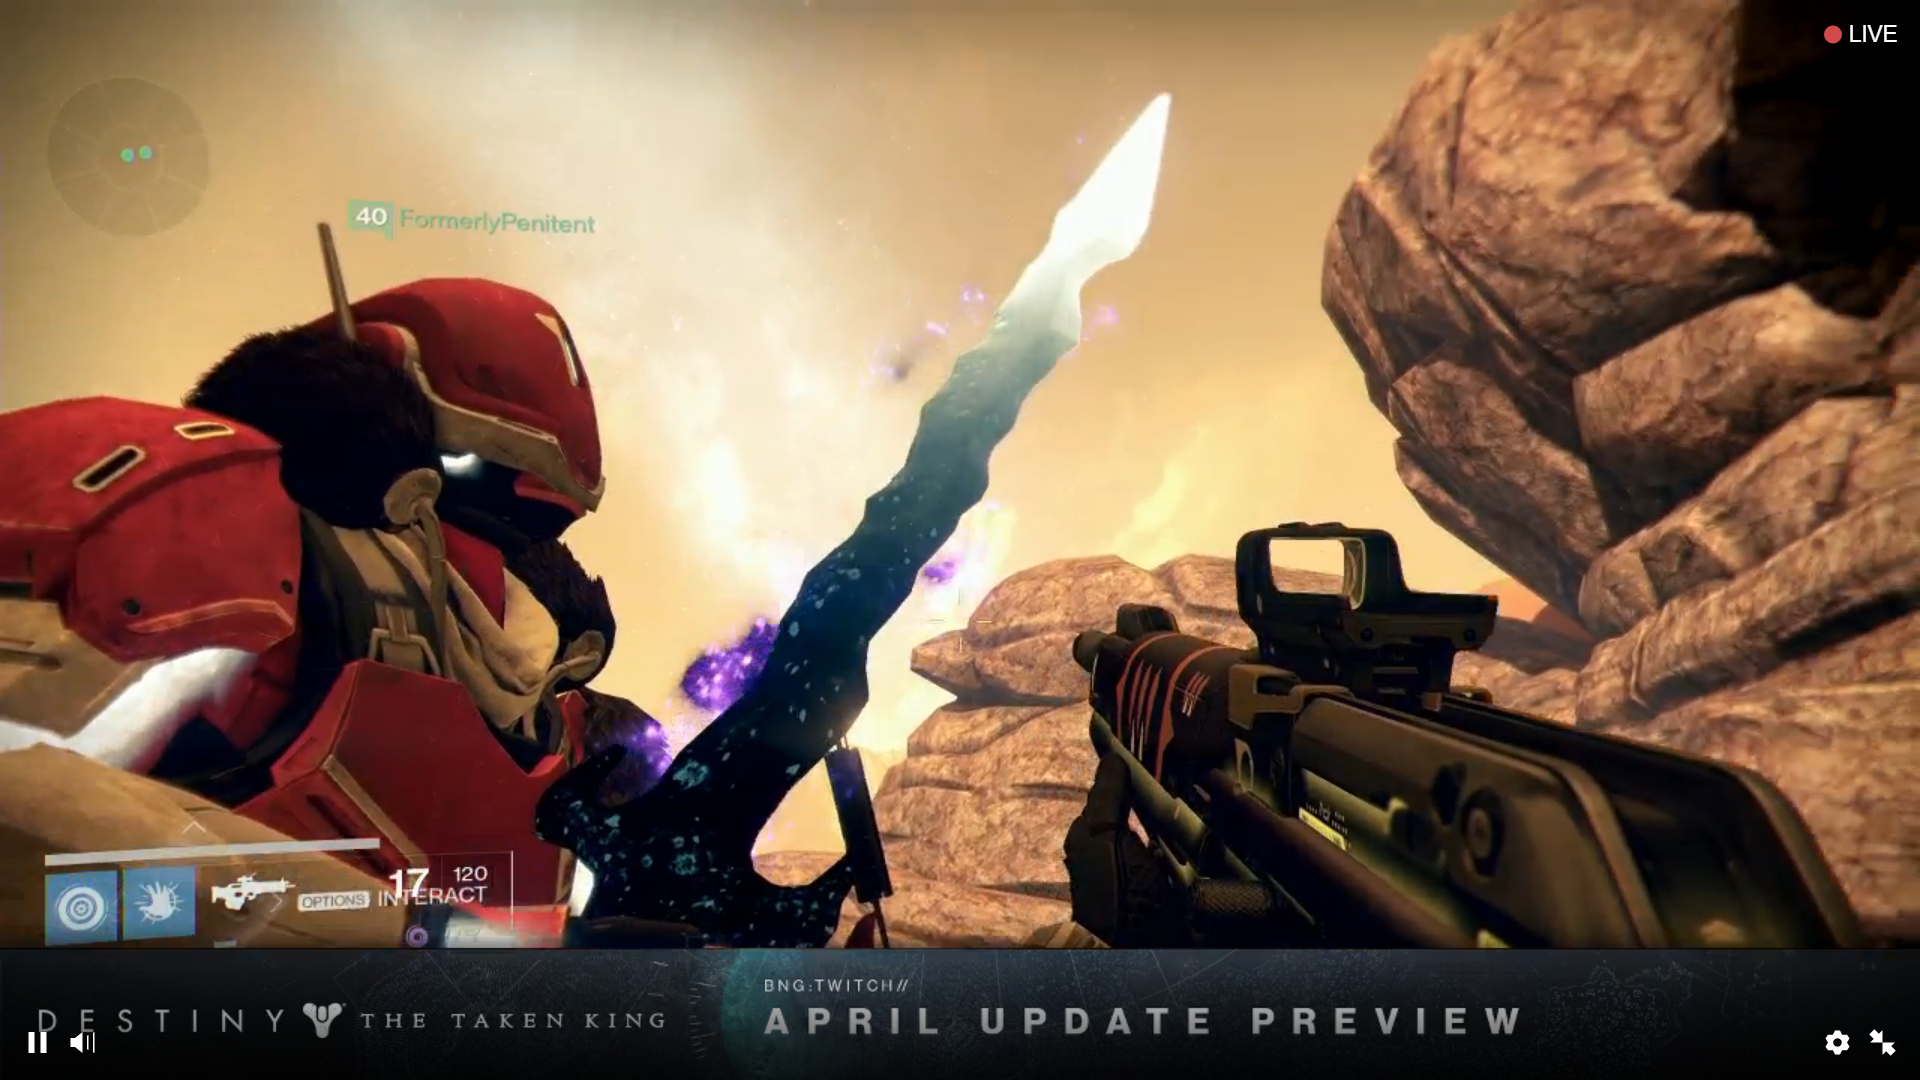 Destiny's April Update to Bring New Chroma System, Sterling Treasure, Taken Sword and More